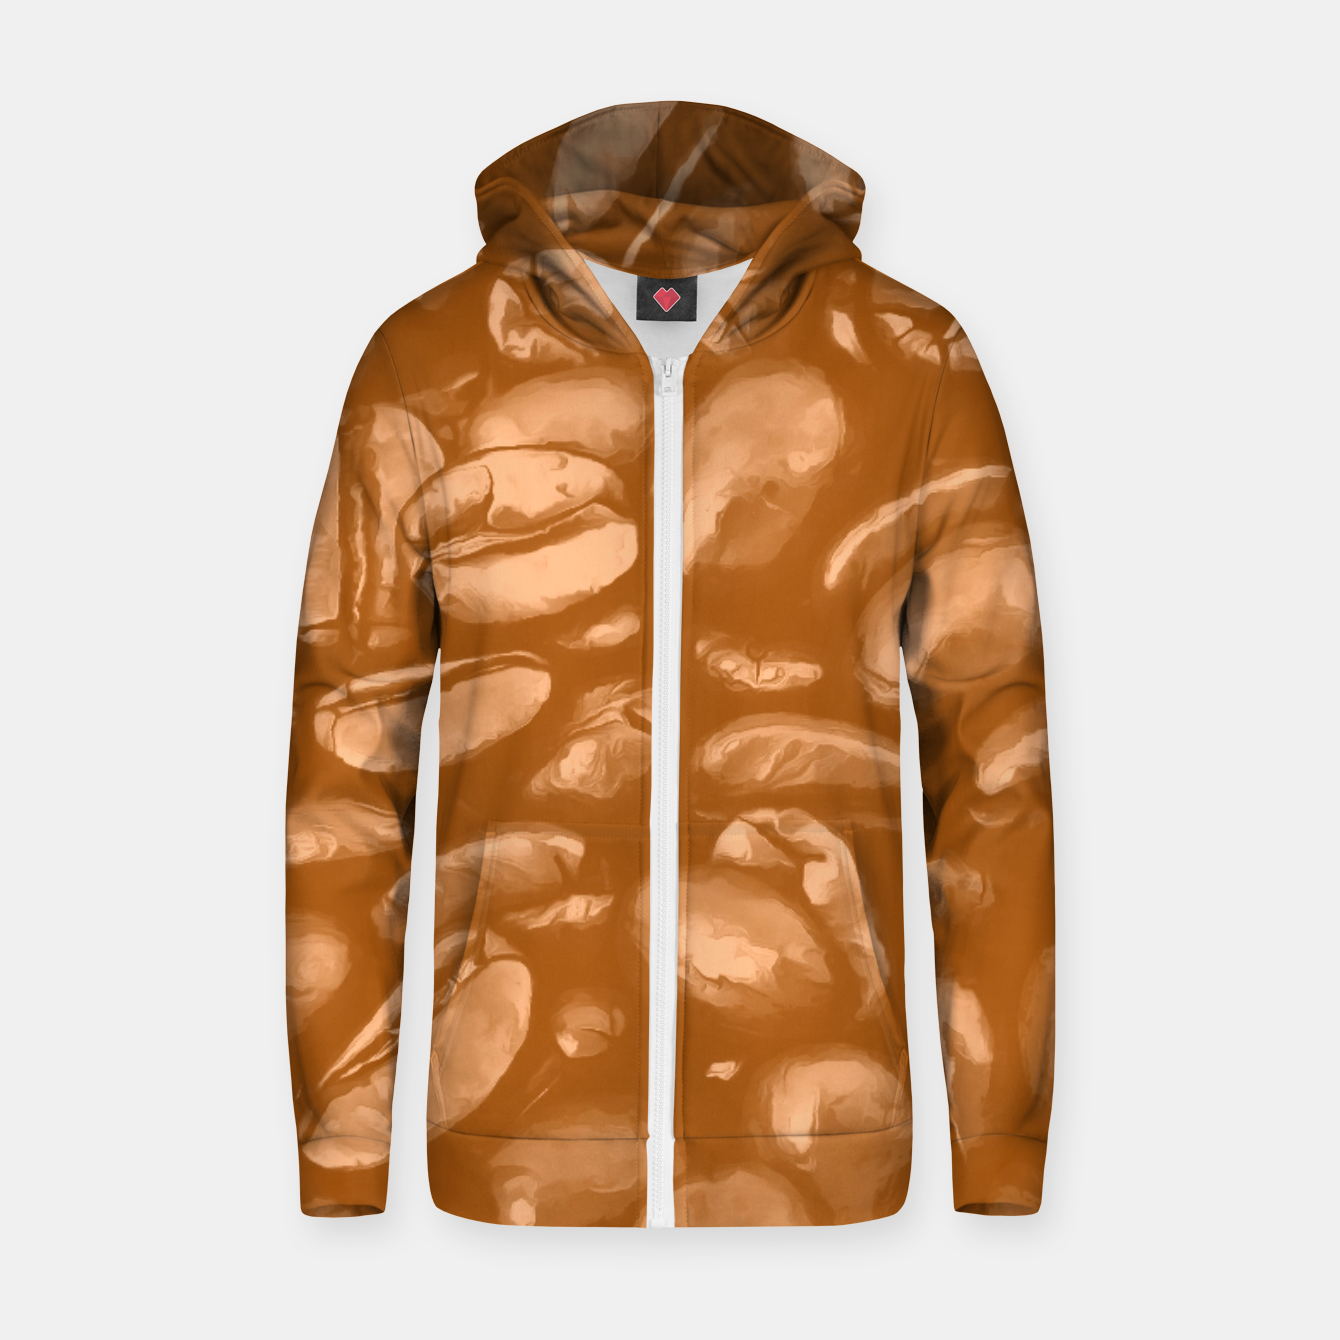 Image de roasted coffee beans texture acrcb Zip up hoodie - Live Heroes